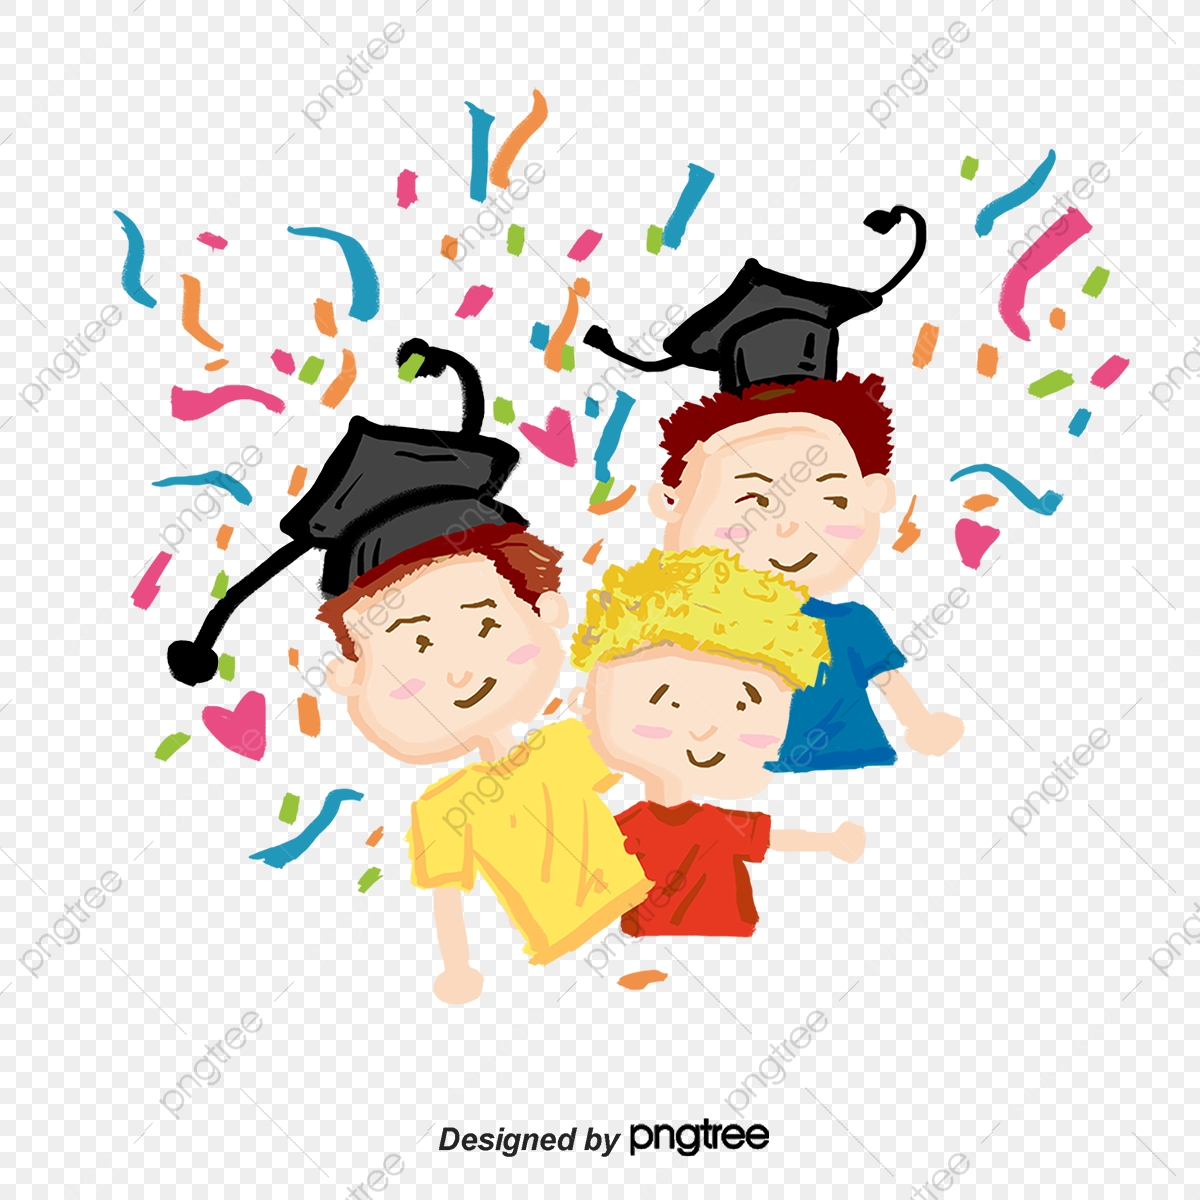 Commercial use resource upgrade to premium plan and get license authorization upgradenow · graduation cartoon boy love